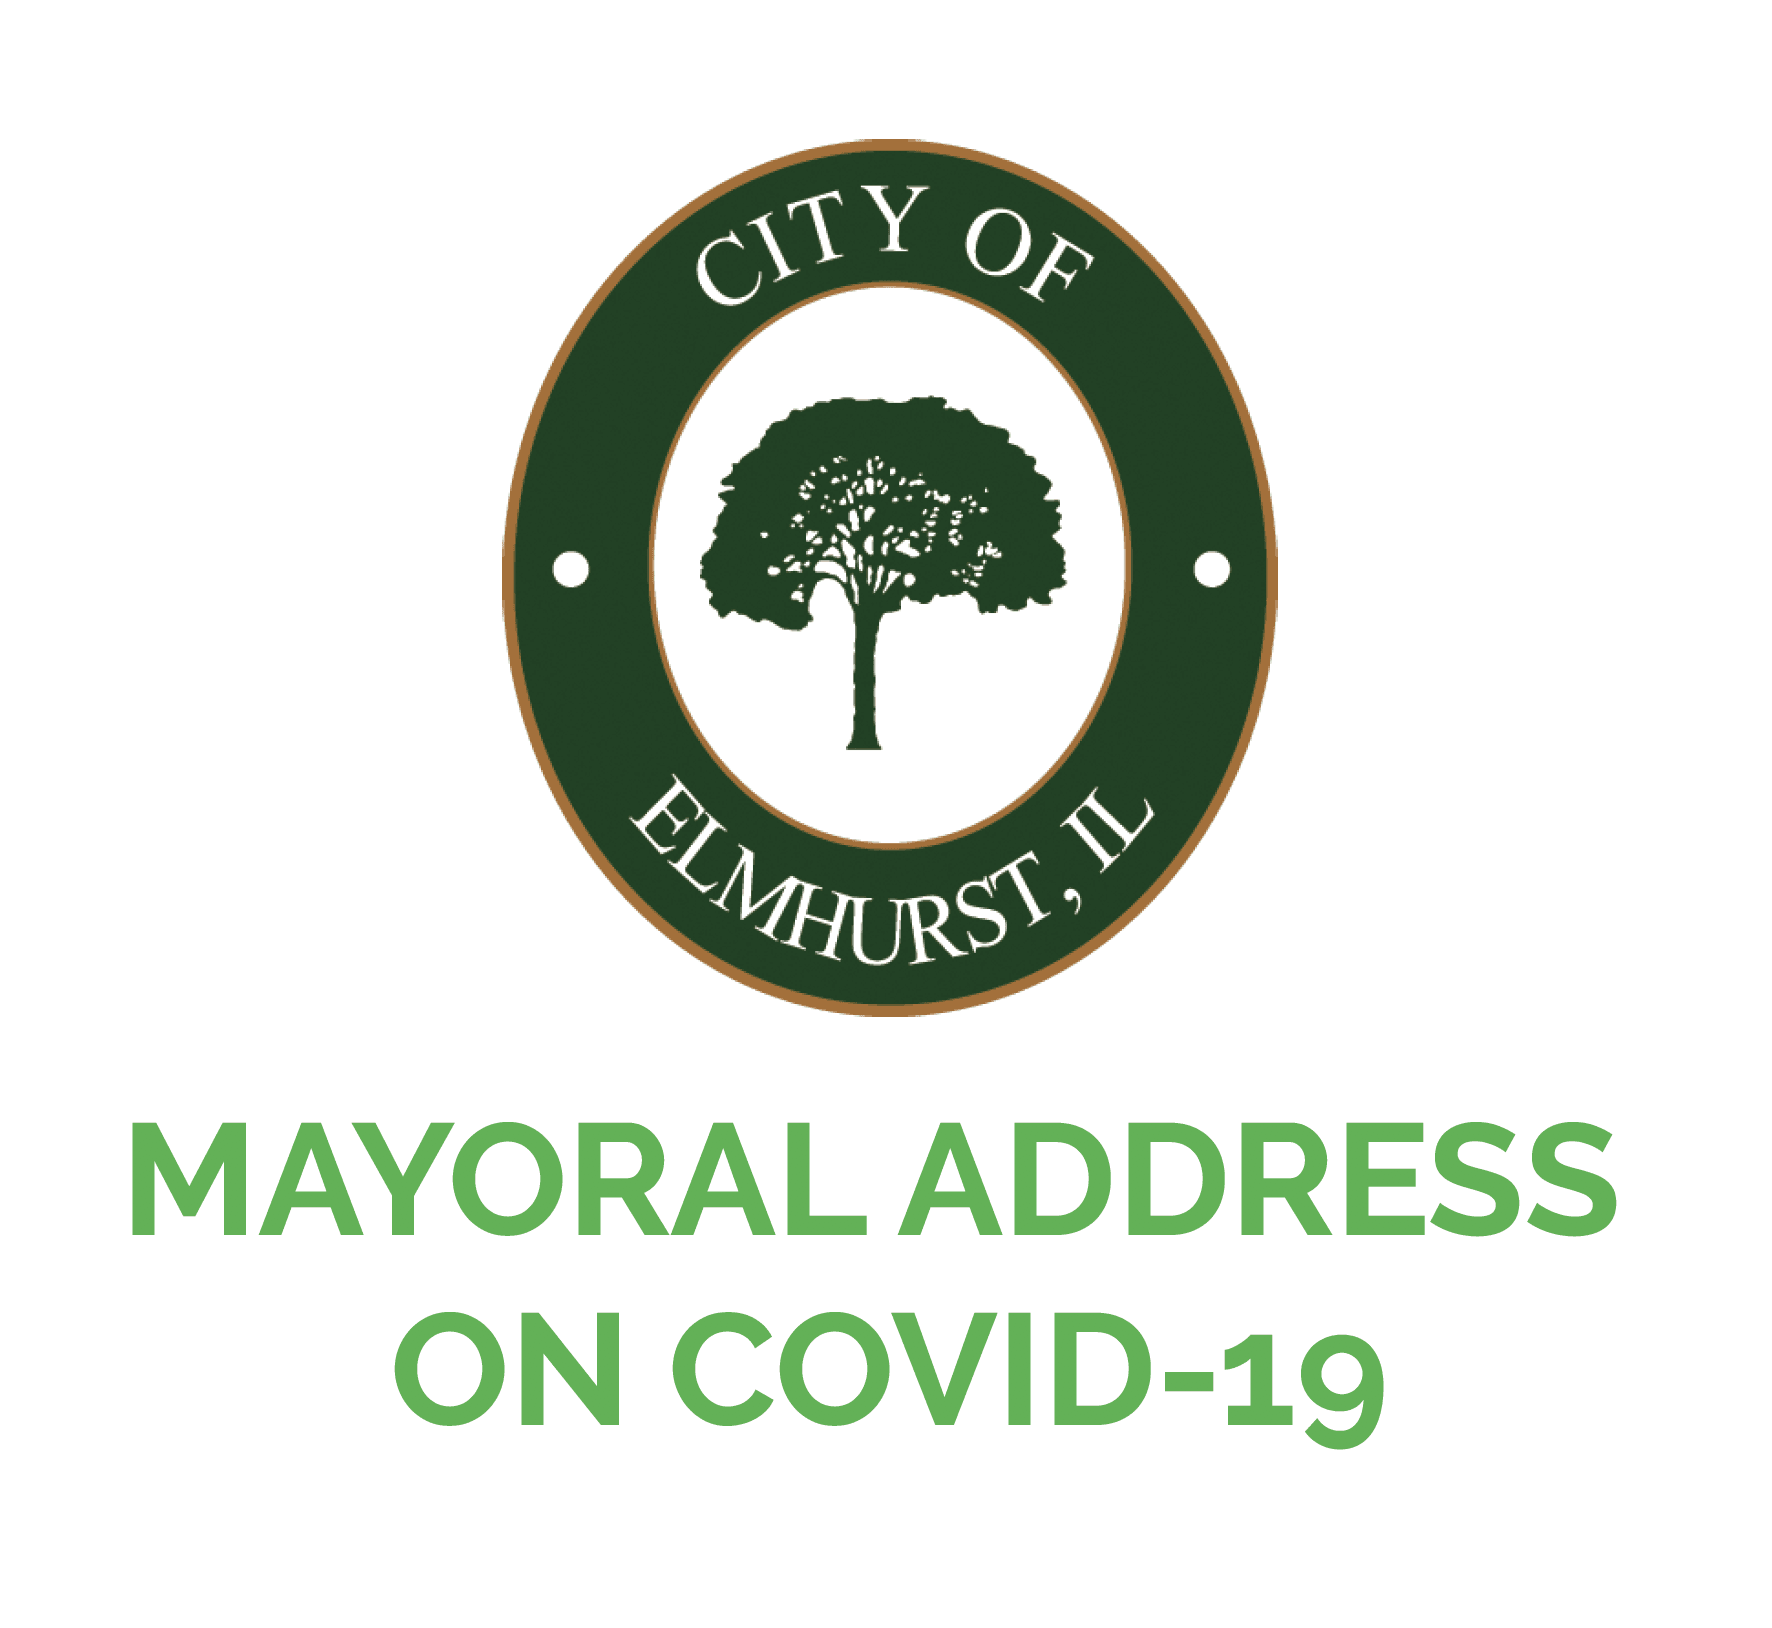 MAYORAL ADDRESS ON COVID-19, MARCH 16